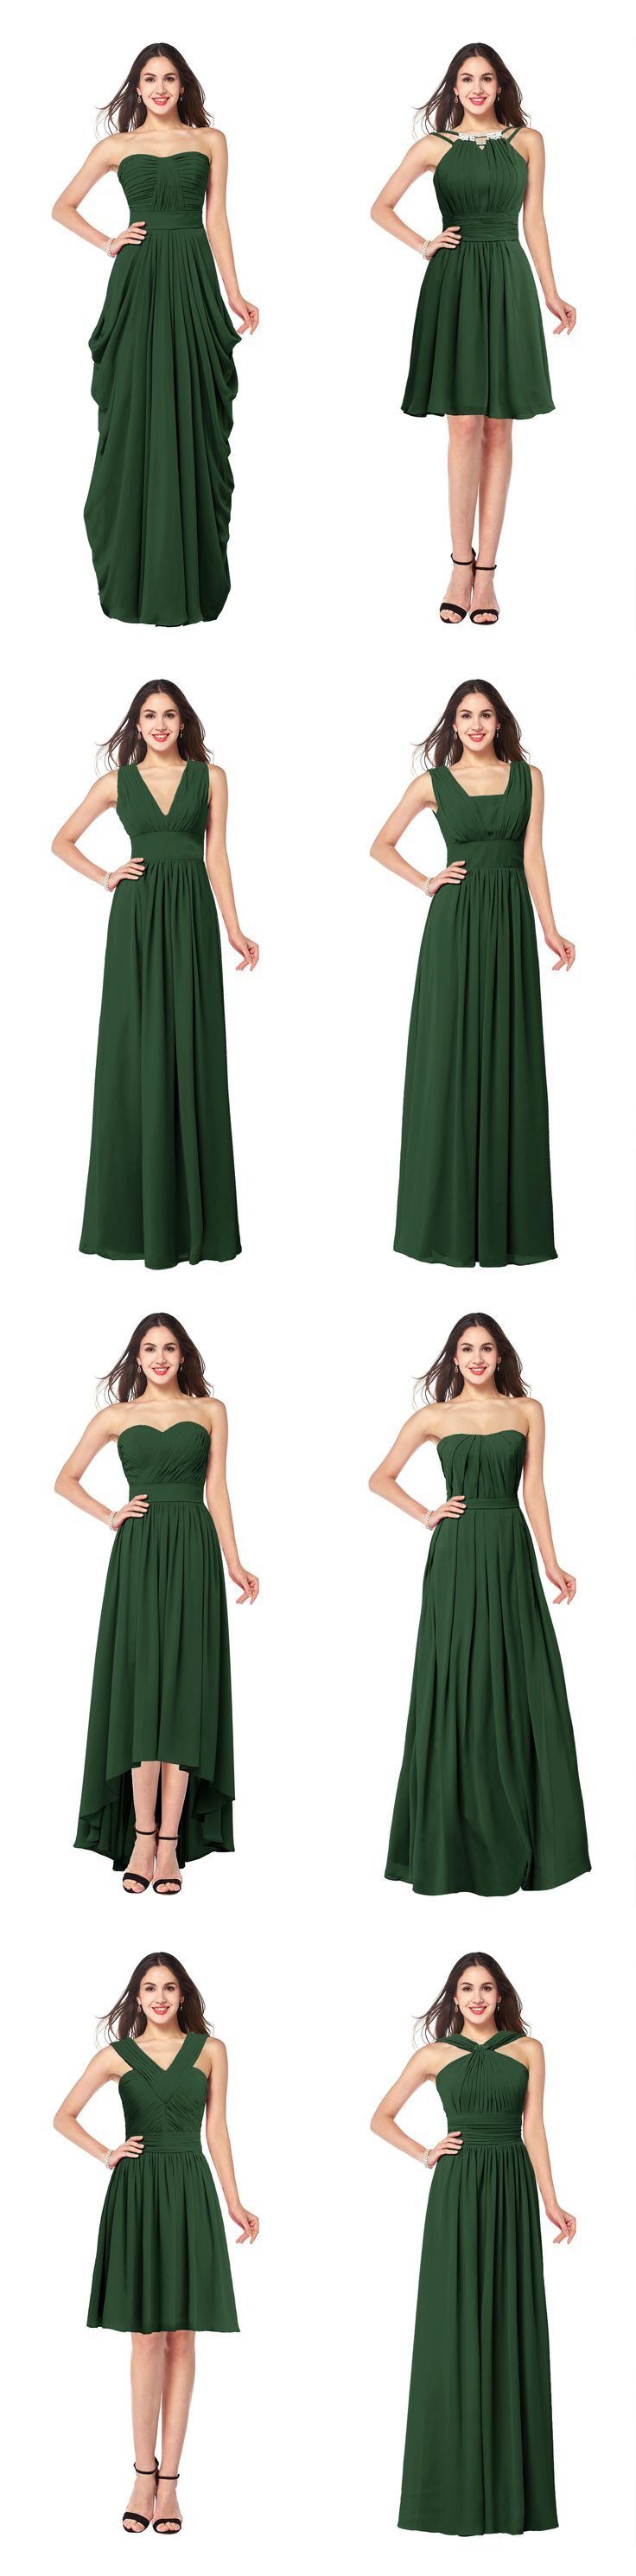 These 8 green chiffon bridesmaid dress are hot for 2016, including strapless, V neck, square neck, sweetheart.